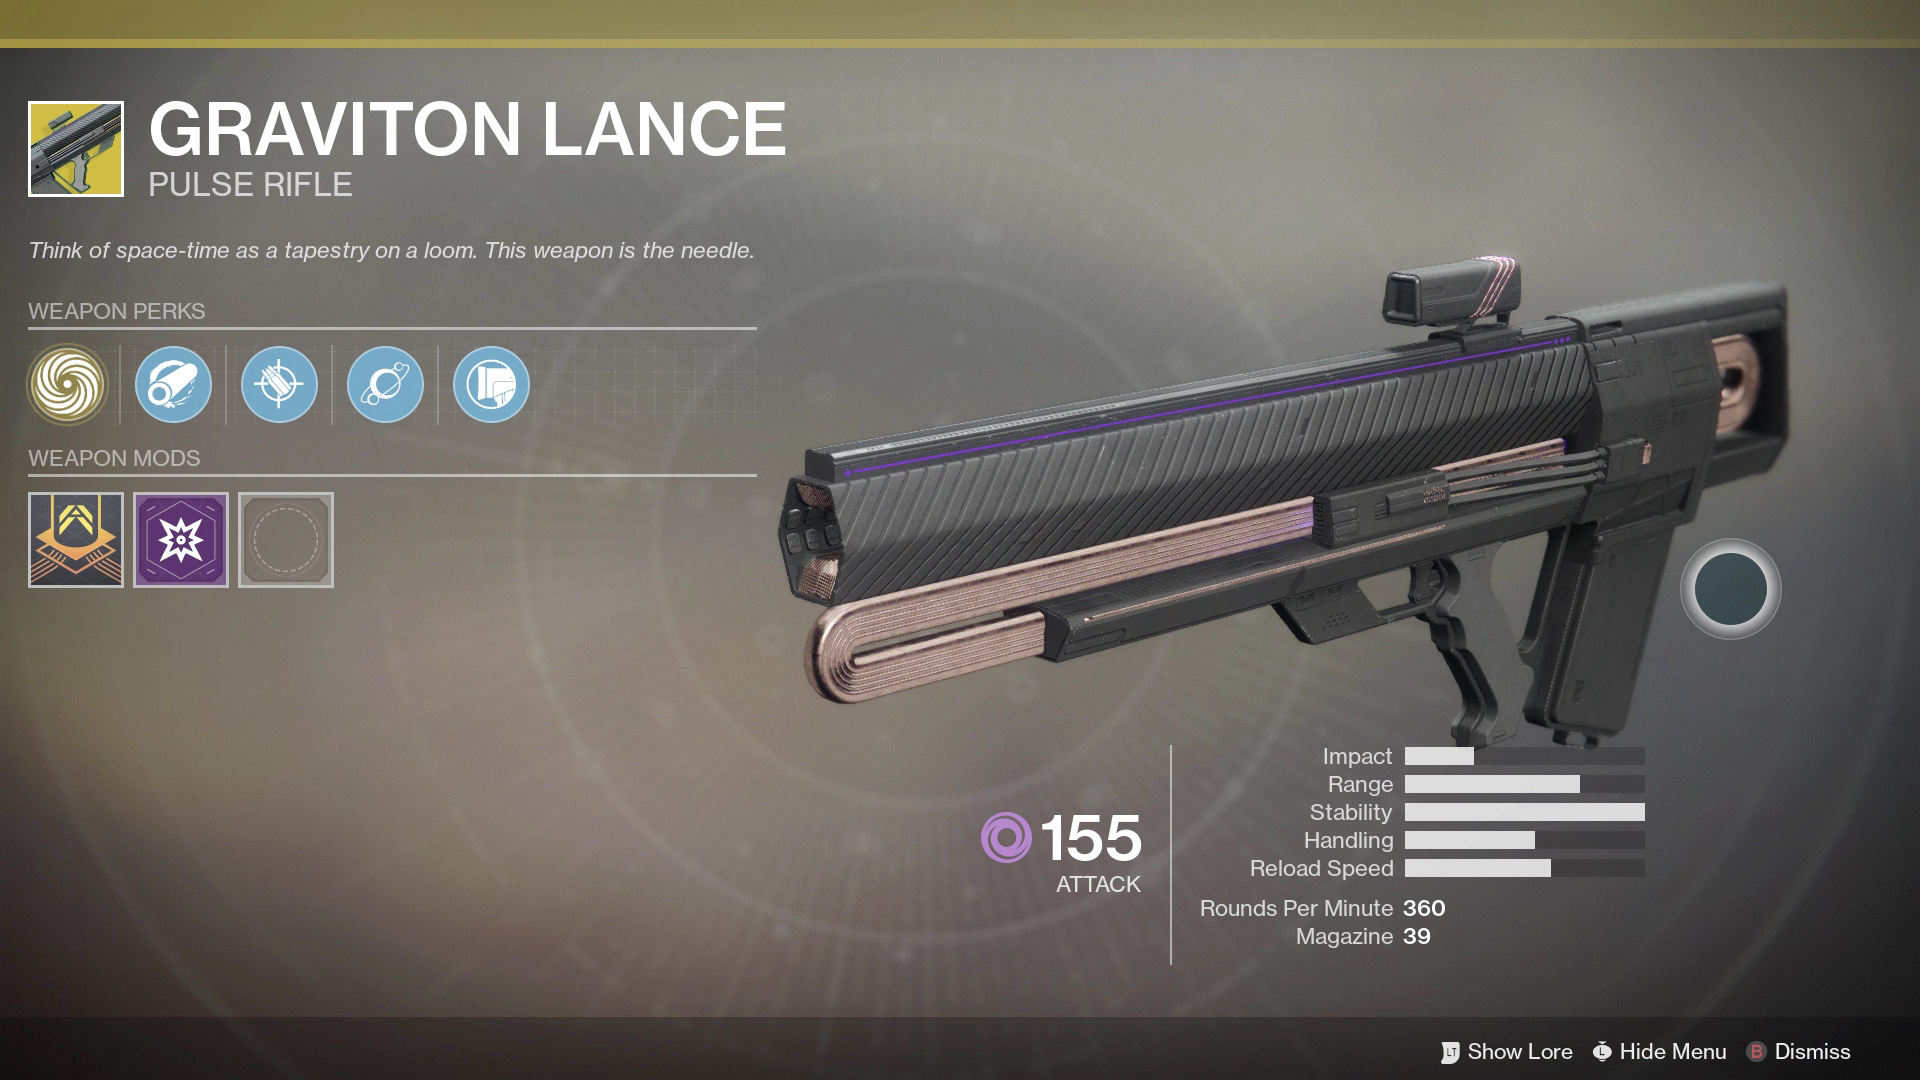 With its third-round doing extra damage, the Graviton Lance Exotic Weapon is great at long-range shots.